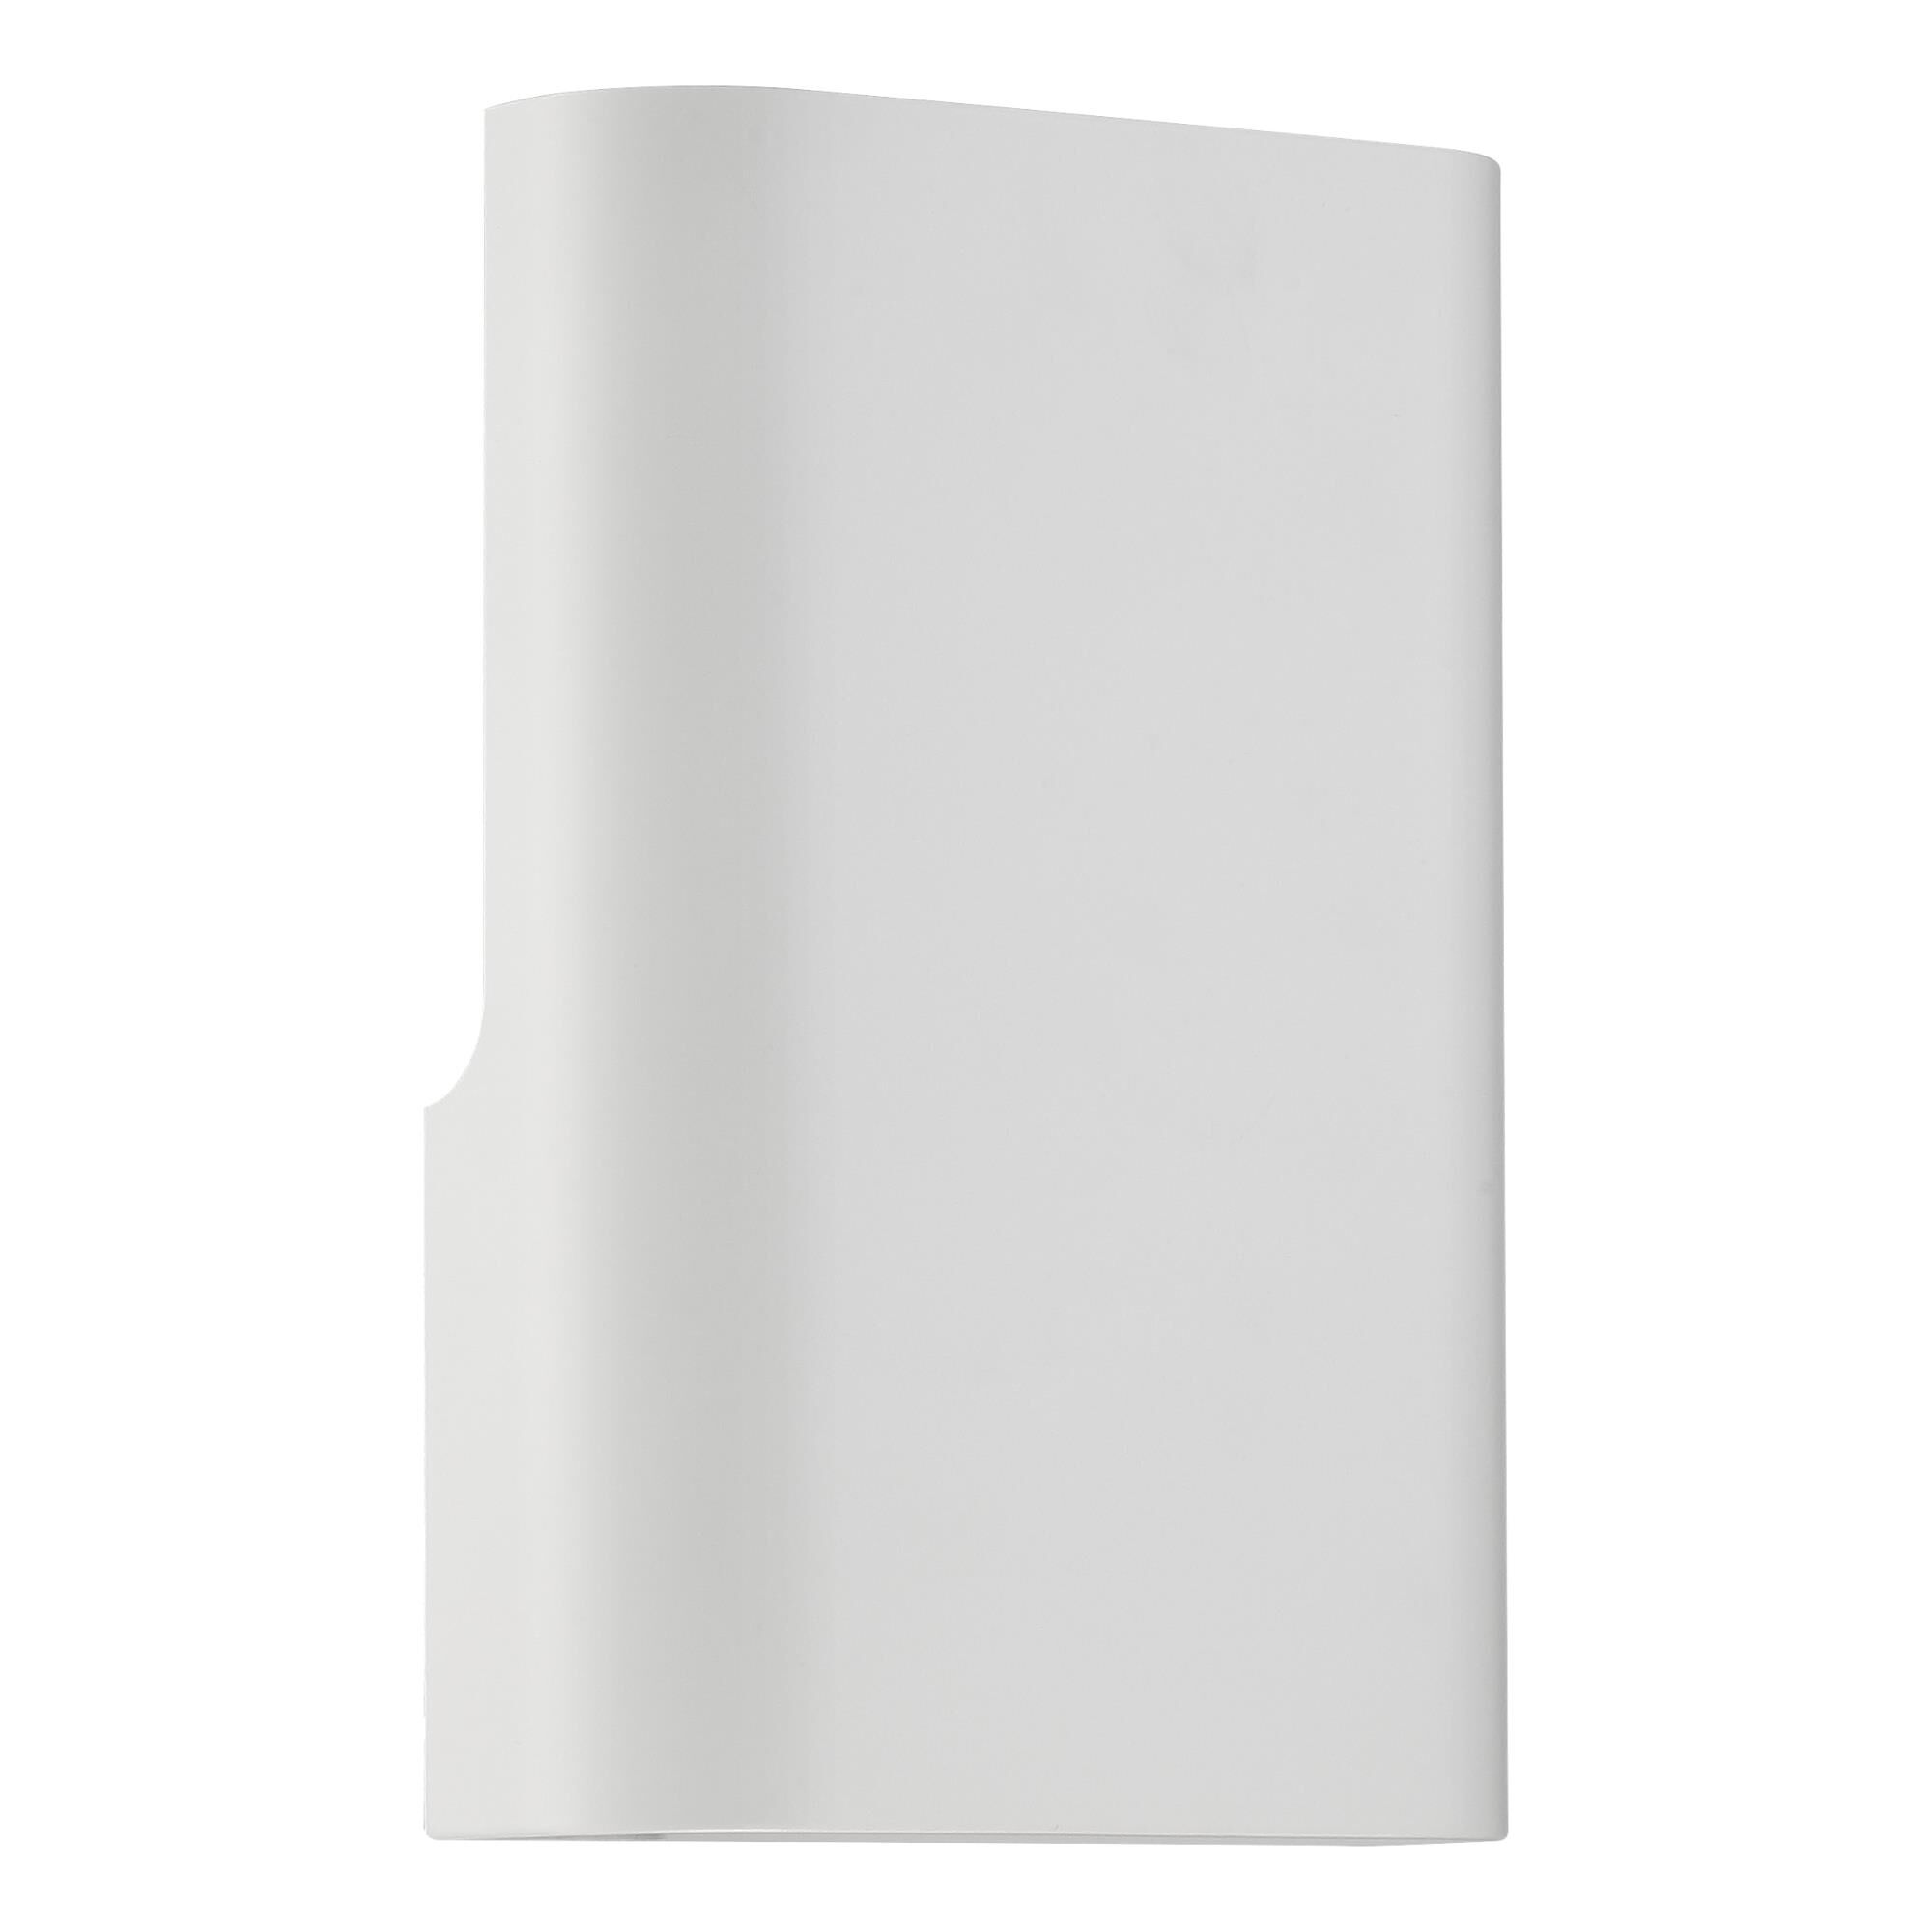 Access Lighting Punch 12 Inch LED Wall Sconce Punch 62237LEDD WH Modern Contemporary